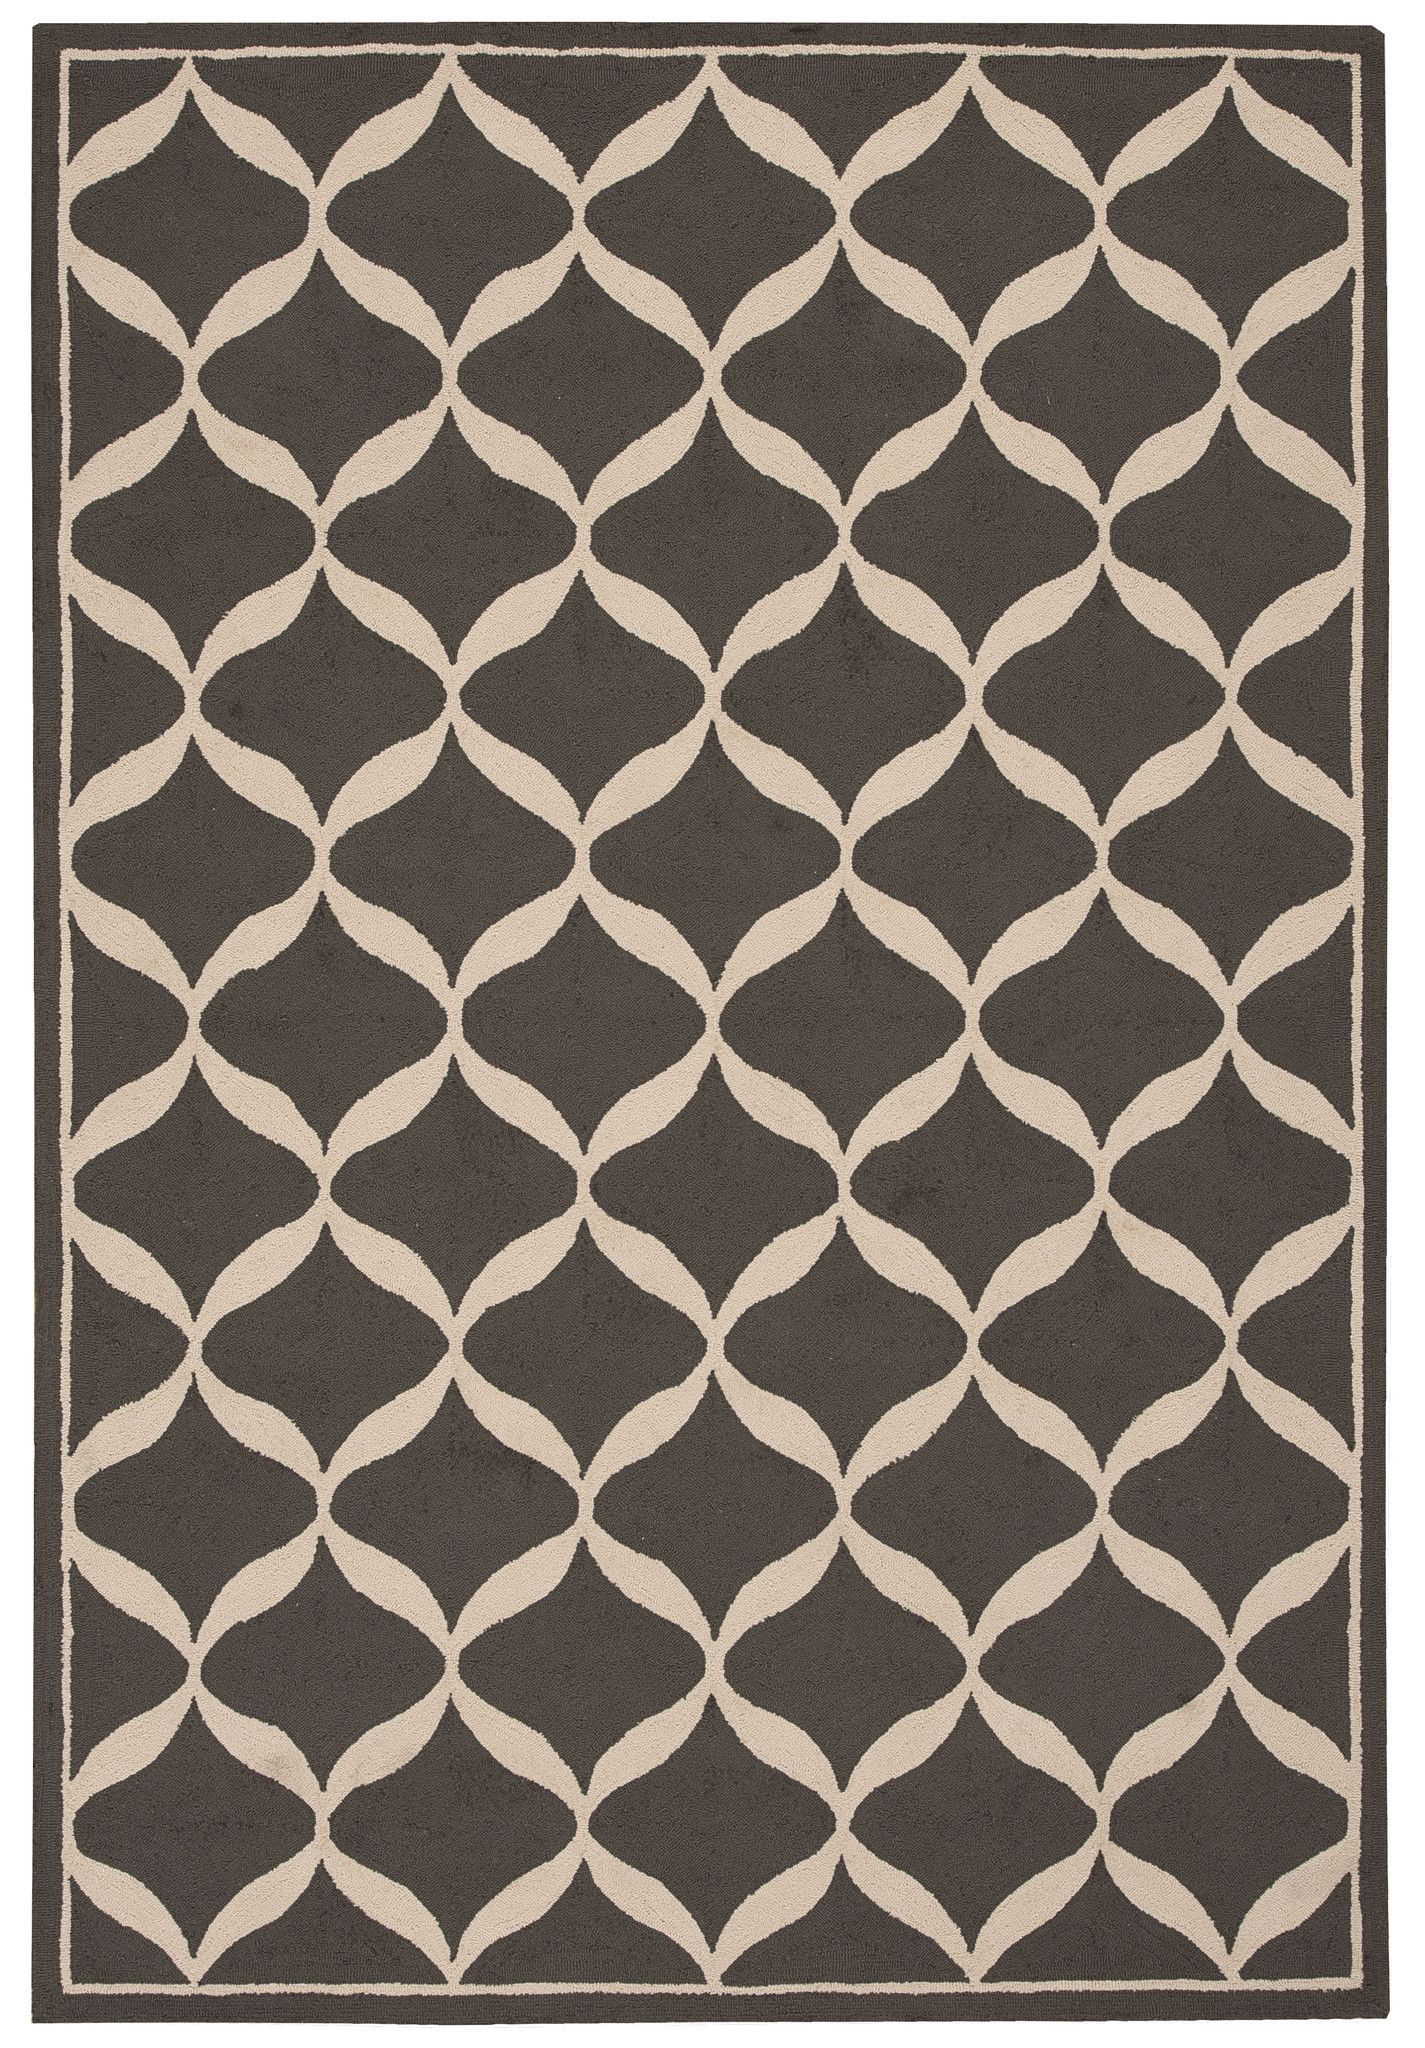 Nourison Decor Grey White Area Rug DER06 GRYWT (Rectangle)